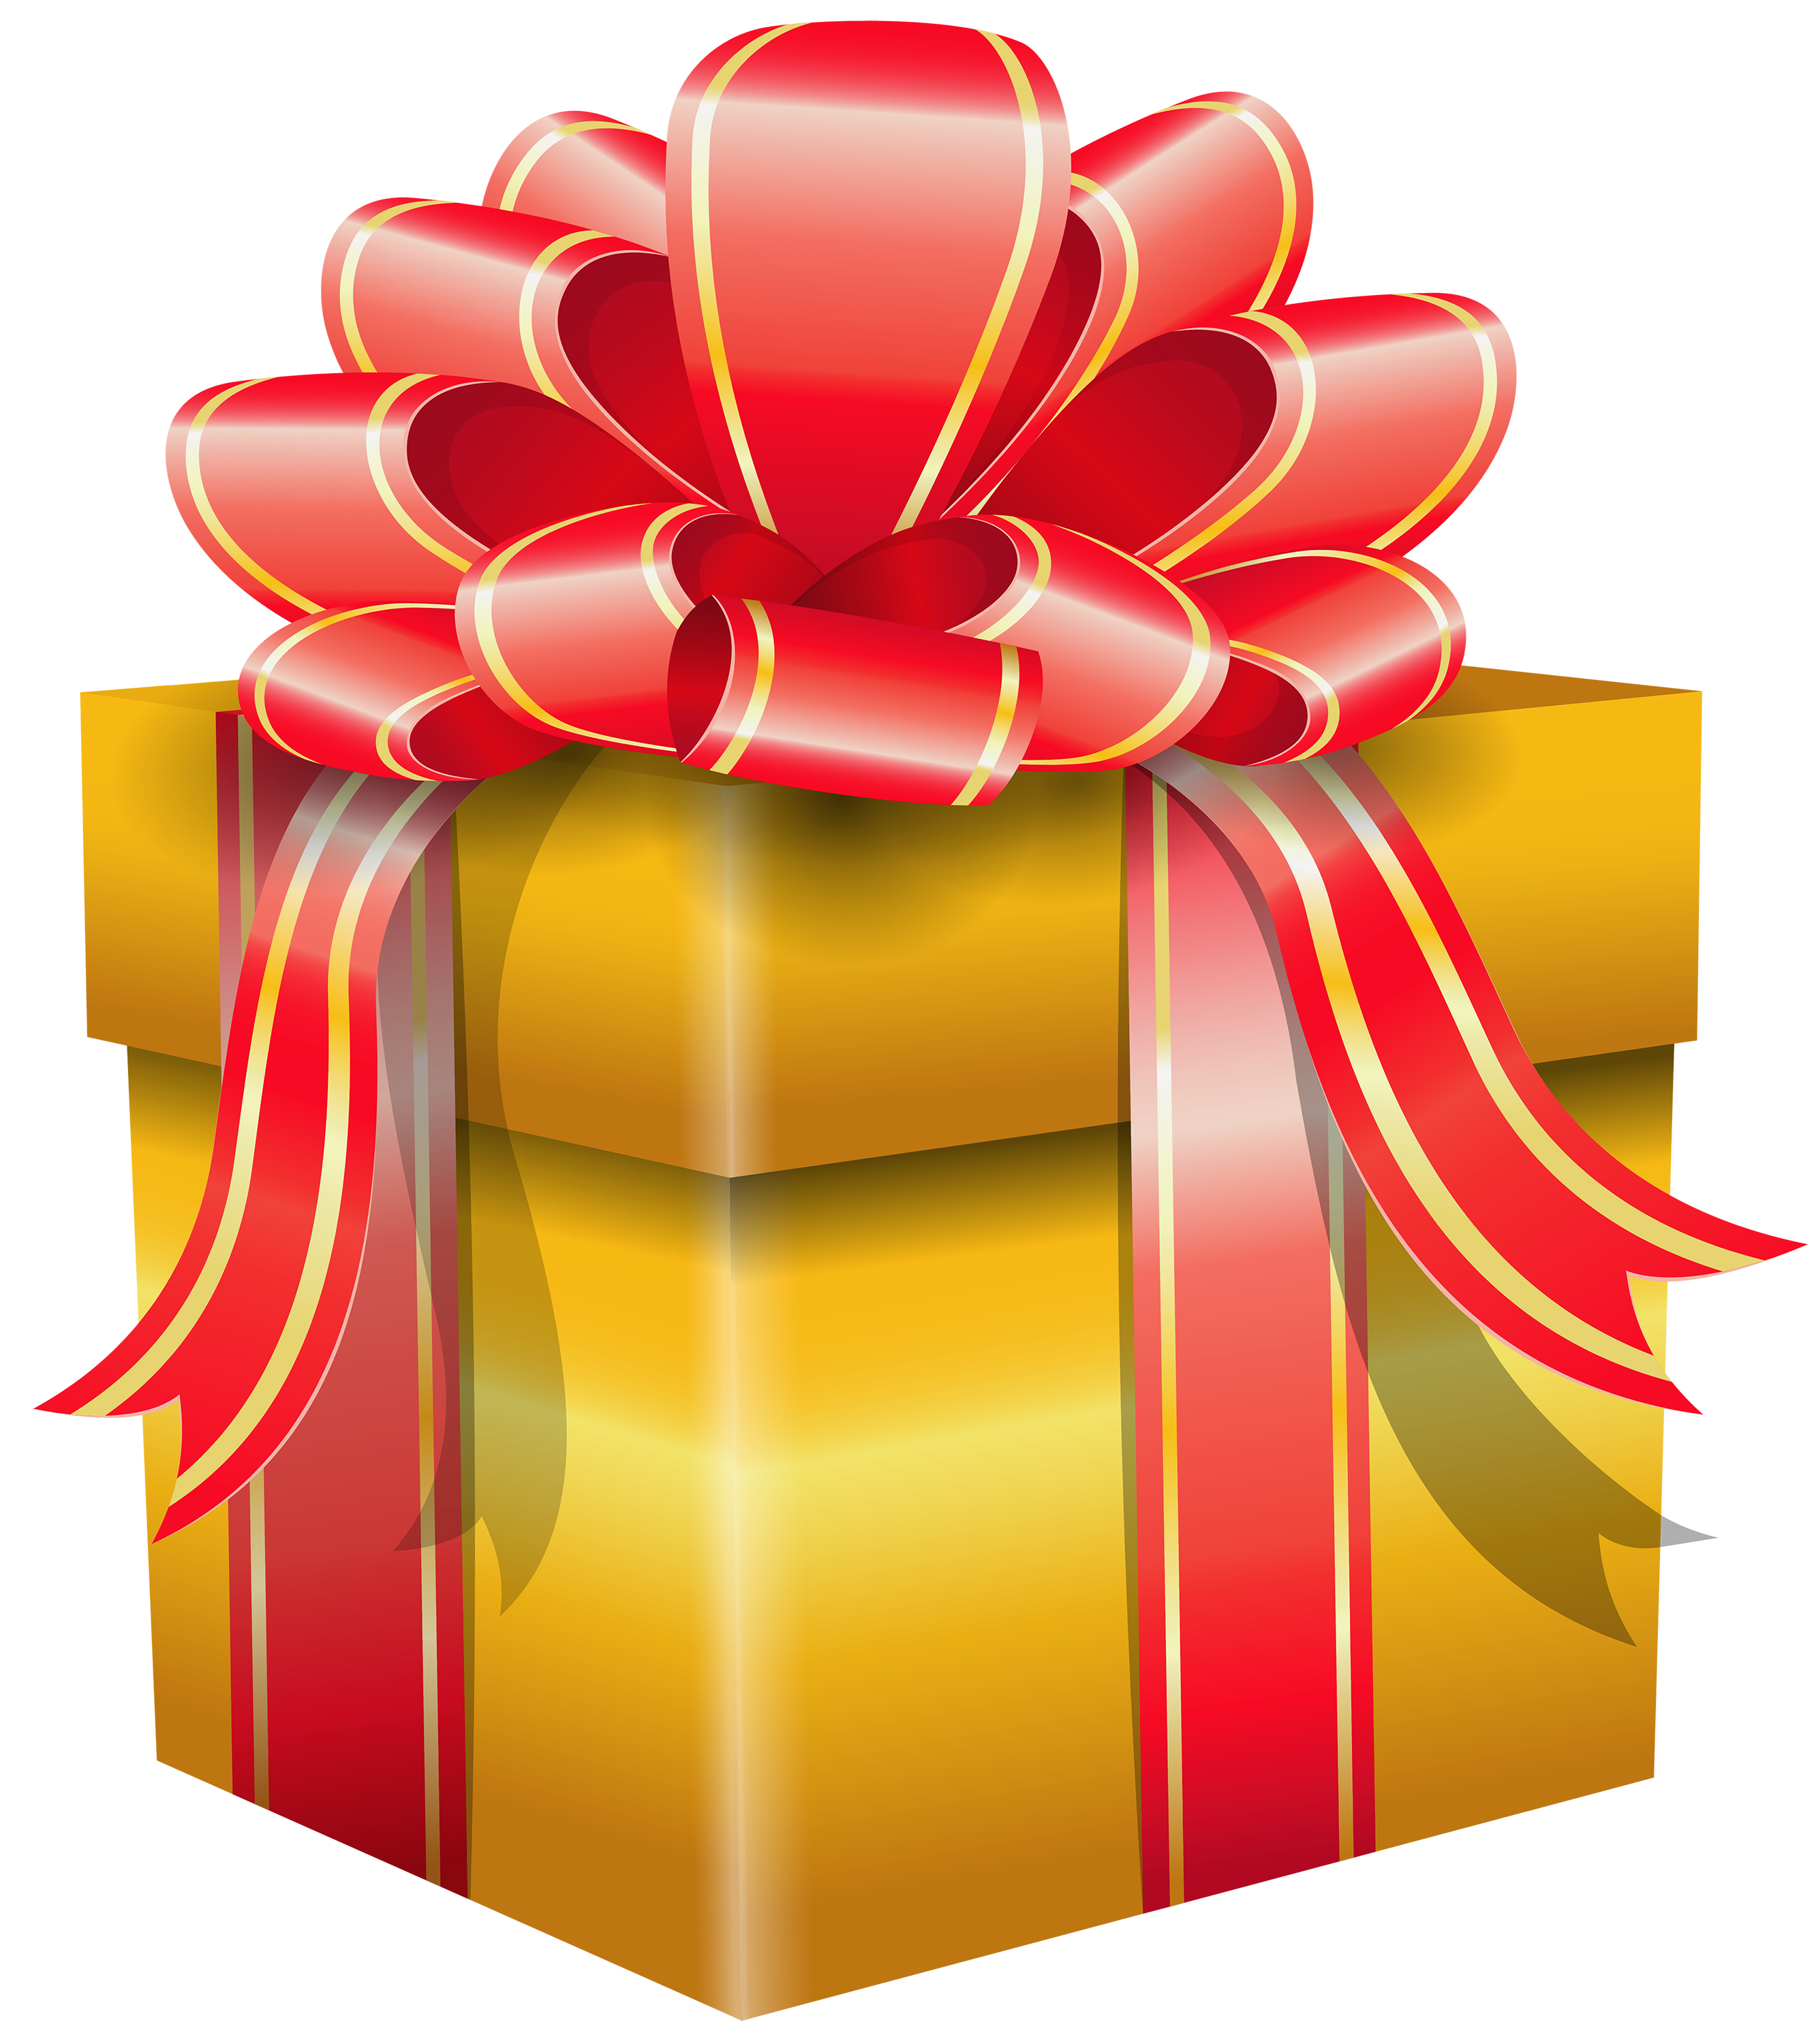 Gift clipart special gift. Yellow box png best